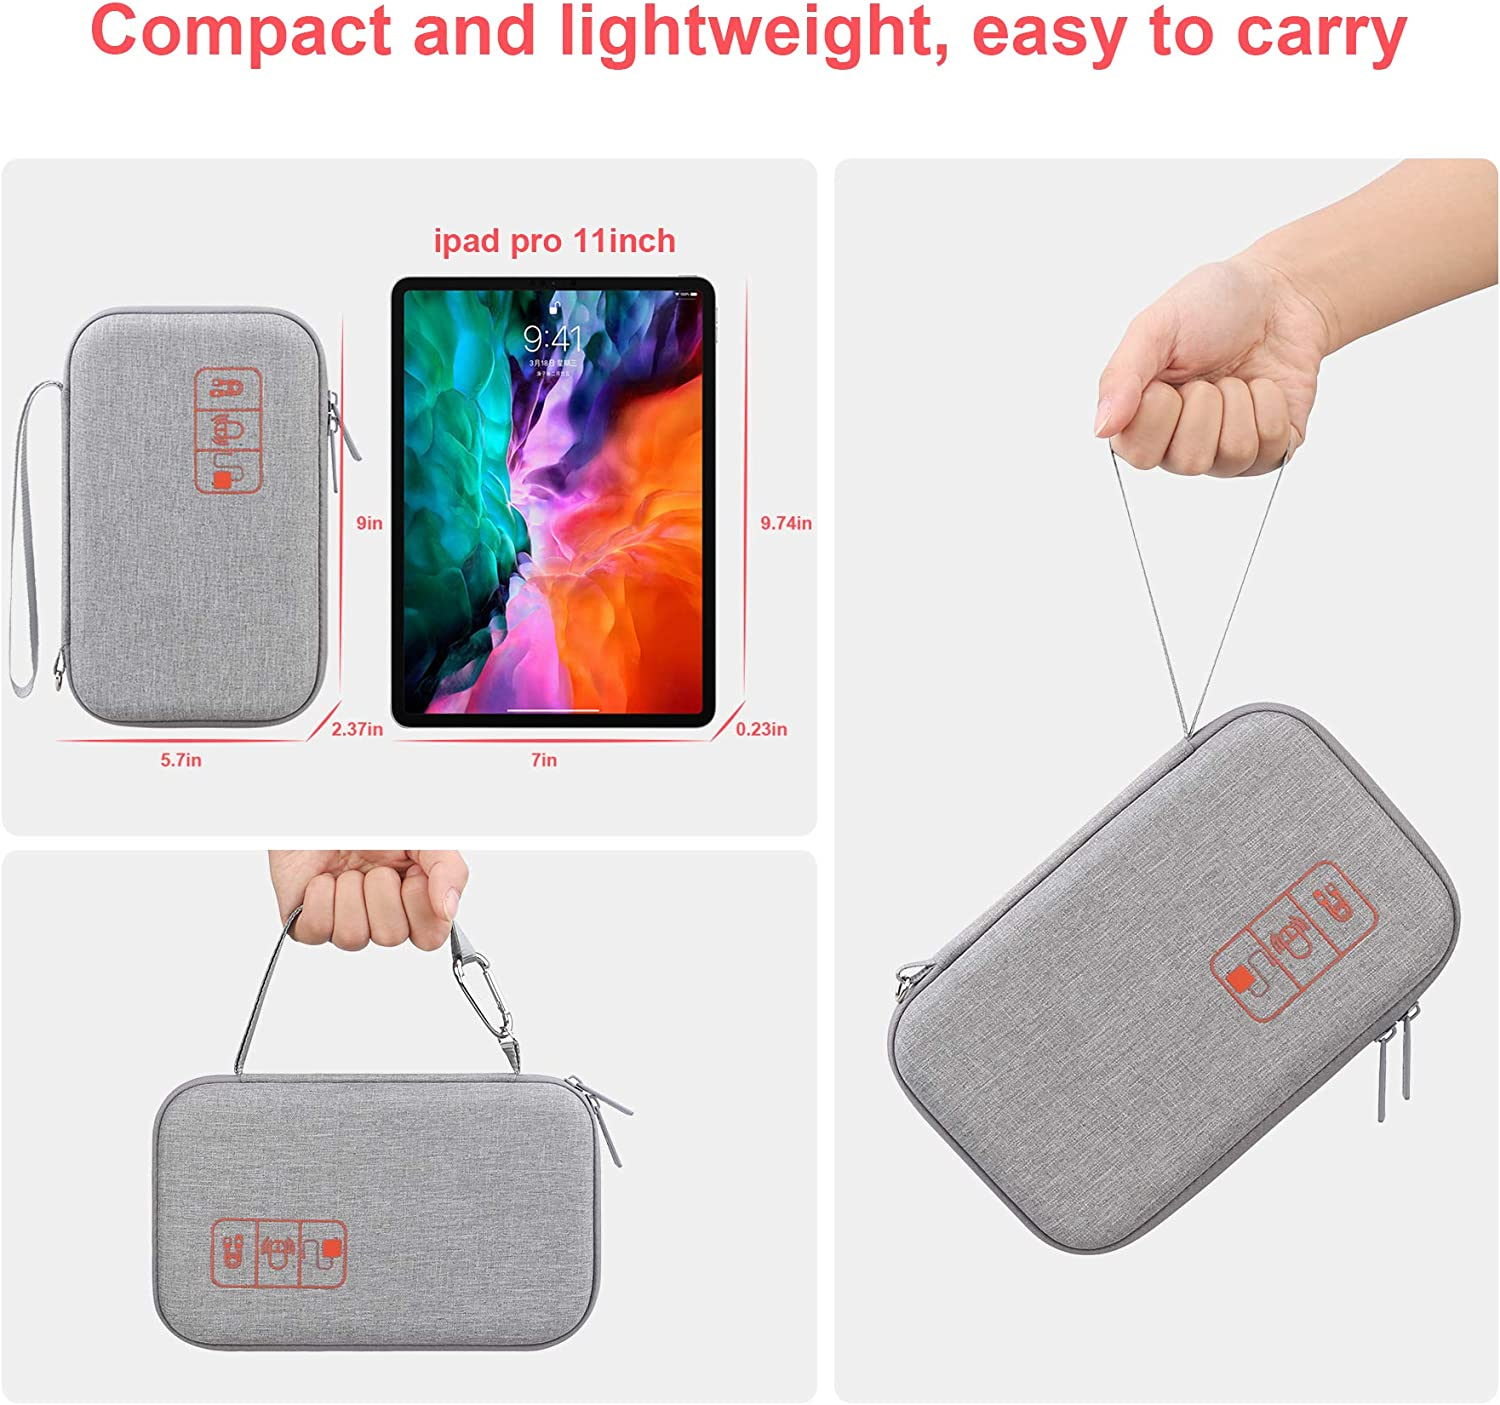 Hard Electronic Organizer Travel Case Electronics Accessories Cable Gadget Wire Storage Bag Double Layer Shockproof Box for Charger, Cord, Flash Drive, Apple Pencil, Power Bank, Grey